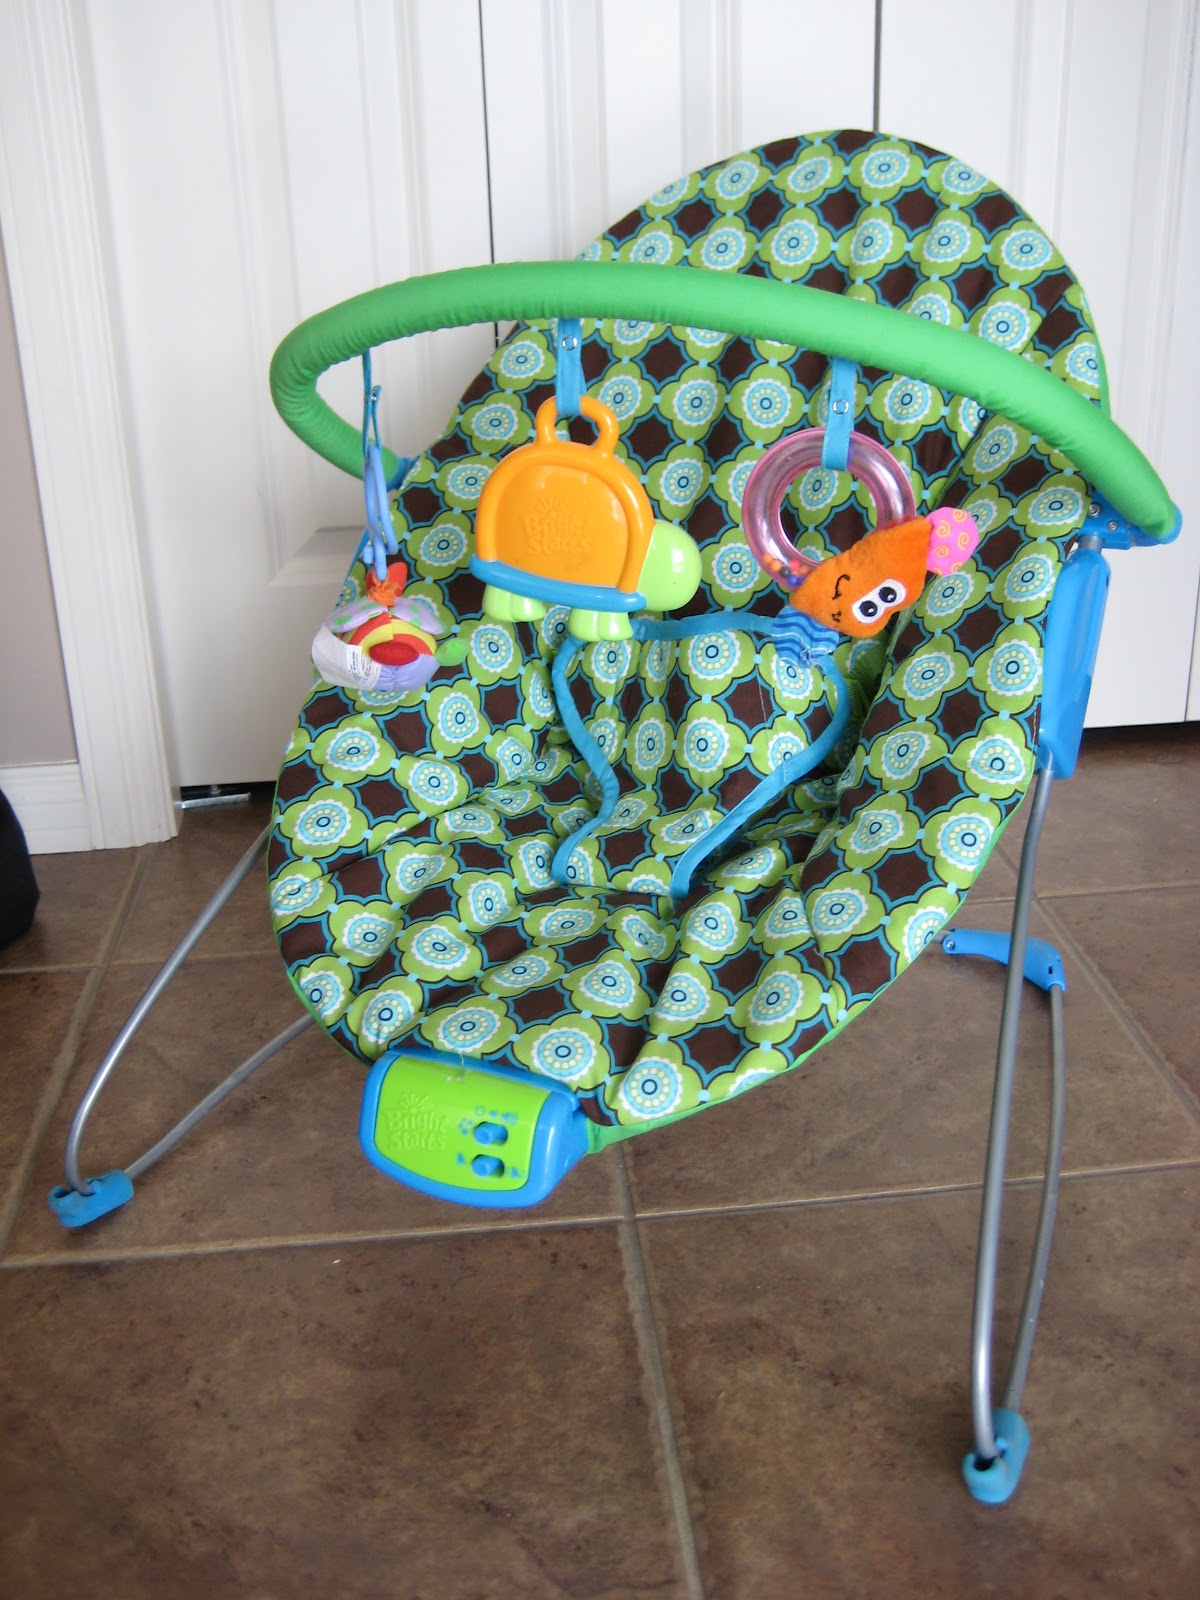 Bouncy Chairs For Babies Evergreen Revolving Chair Laura Thoughts Re Cover 1 Of 3